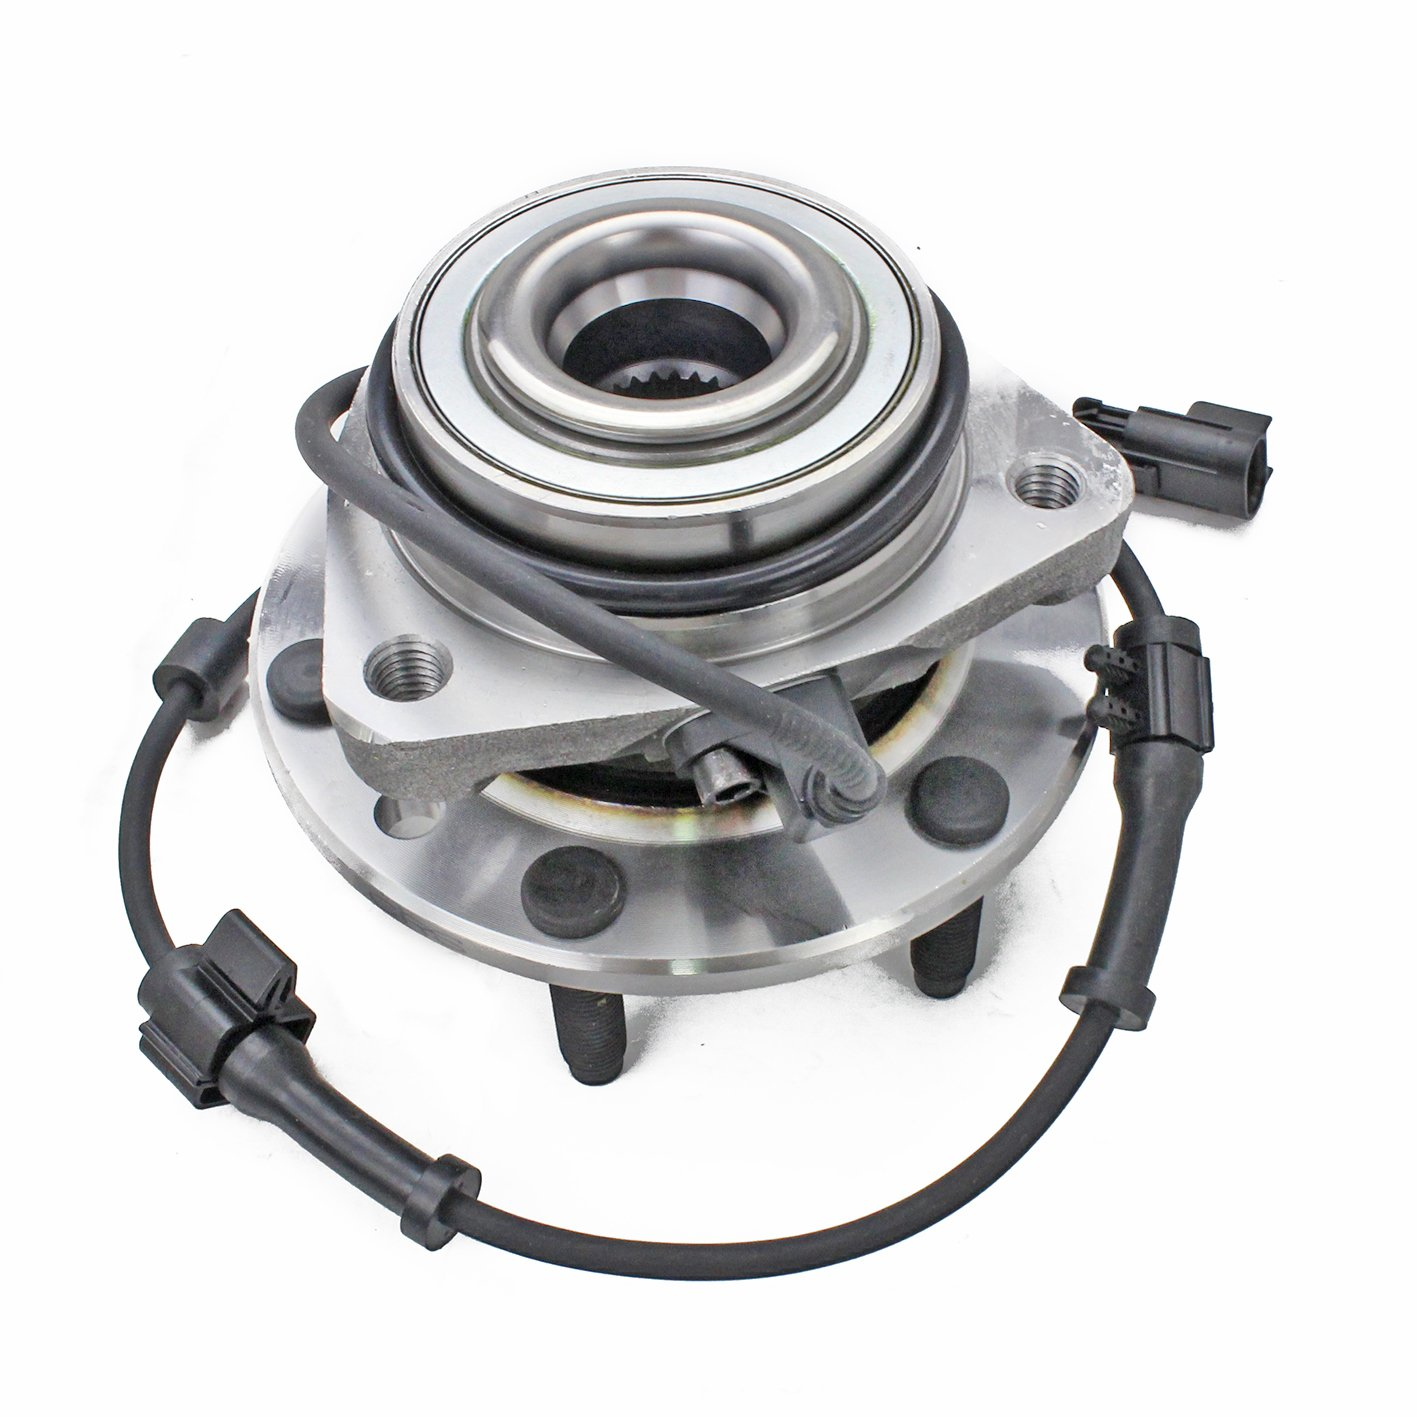 513188 Wheel Bearing Hub Assembly, Front Left/Right, for 02-09 Chevy Trailblazer (EXT)/ 02-07 SSR, GMC Envoy (XL) Denali/XUV, 03-08 Isuzu Ascender, 04-07 Buick Rainier, 02-04 ldsmobile Bravada